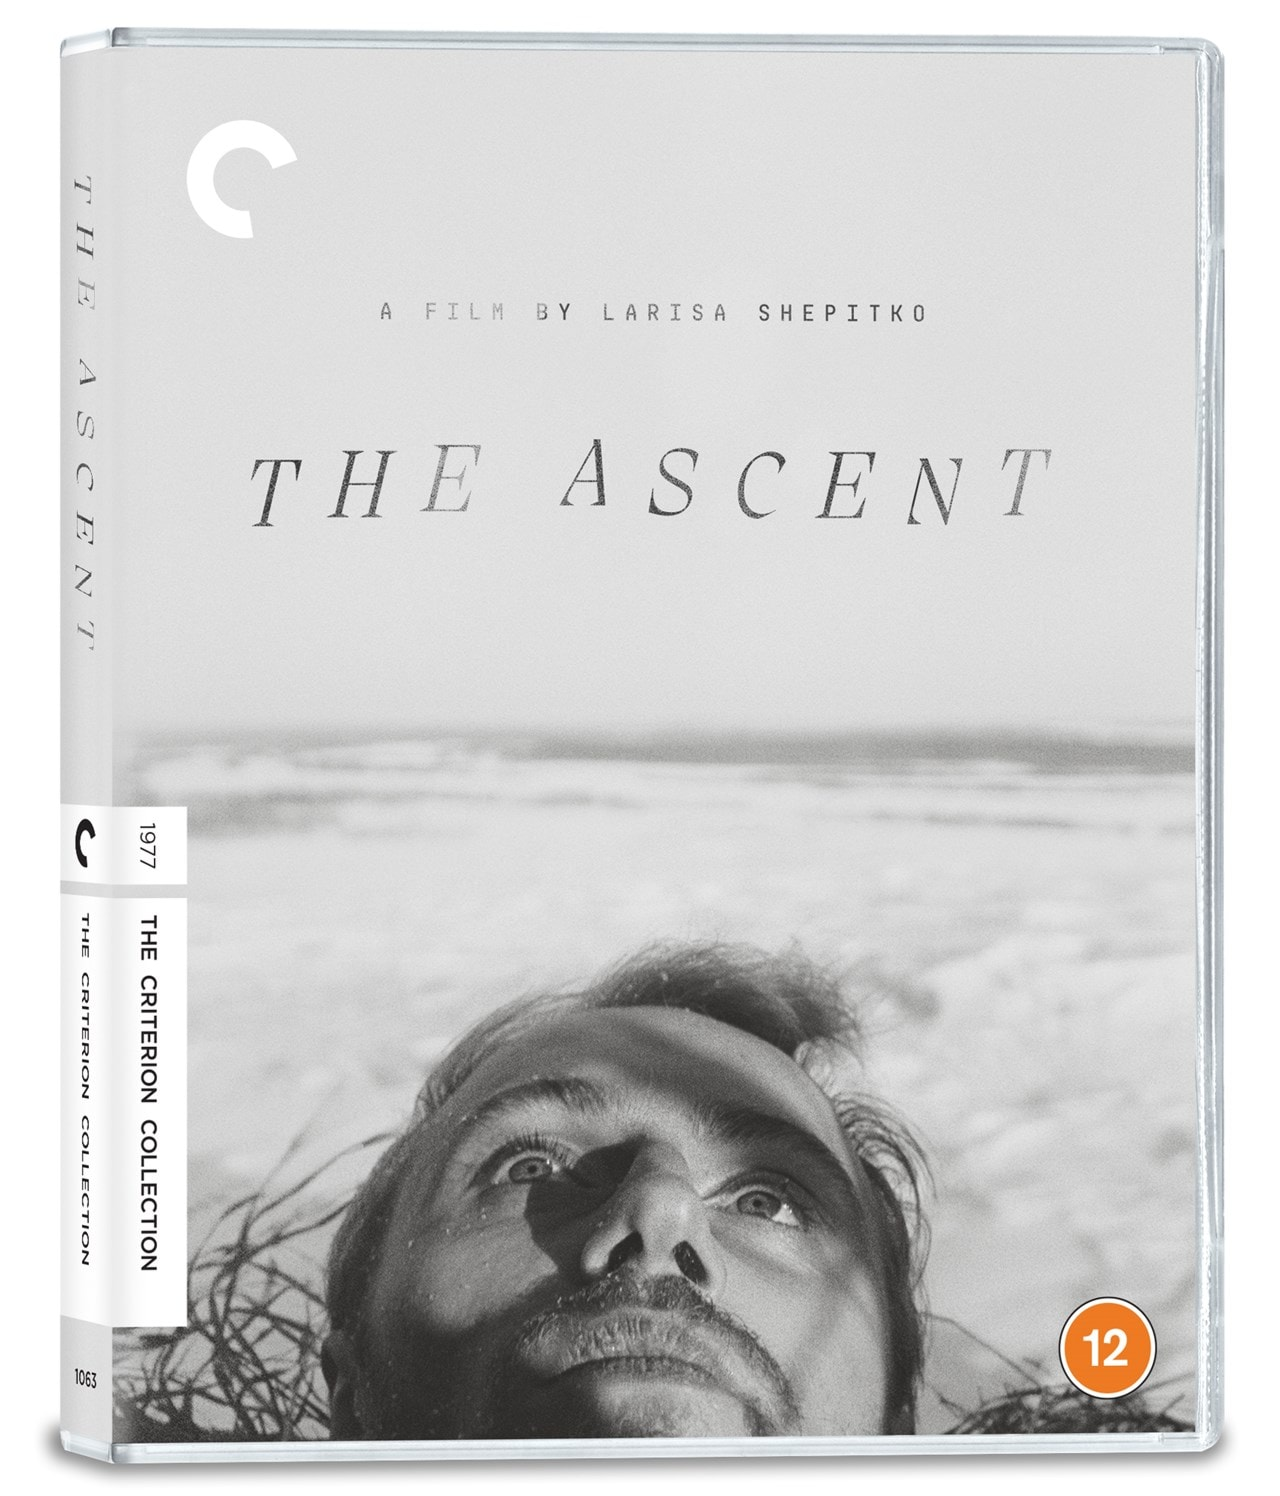 The Ascent - The Criterion Collection - 2